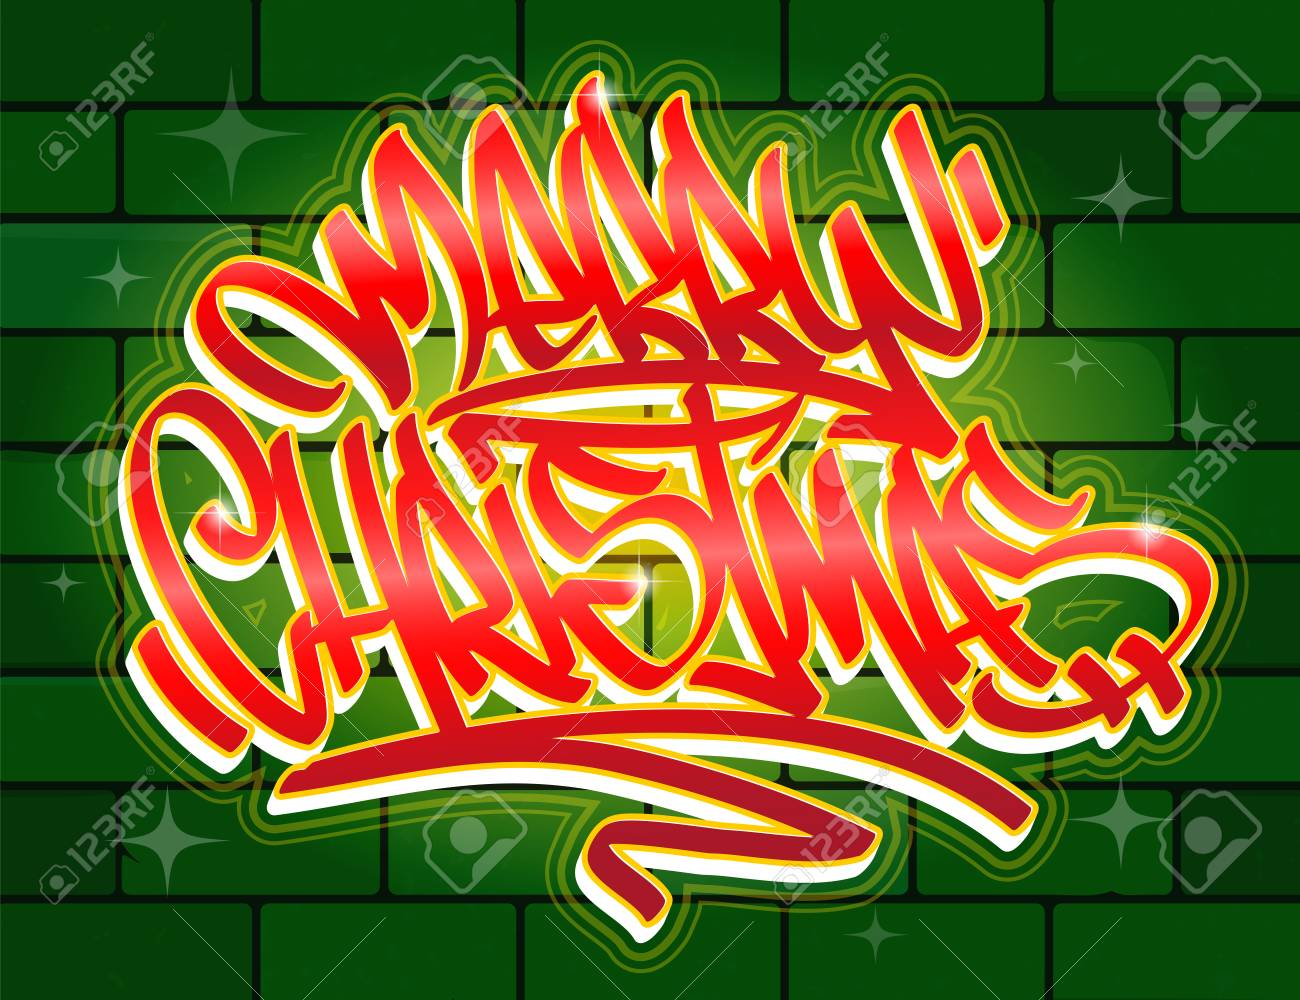 Christmas Graffiti Background.Merry Christmas Lettering Greeting Card In Graffiti Style In